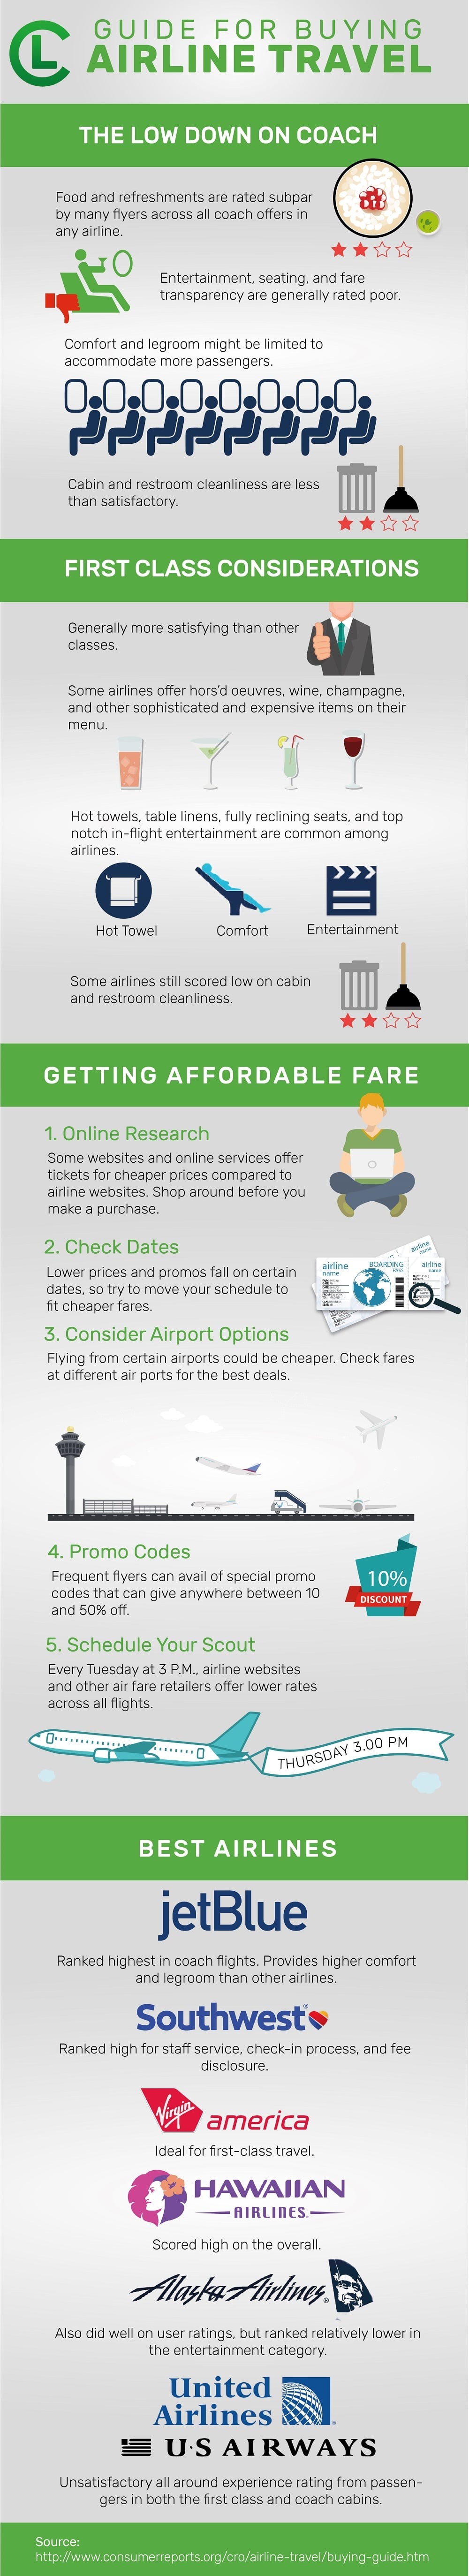 Guide For Buying Airline Travel Infographic